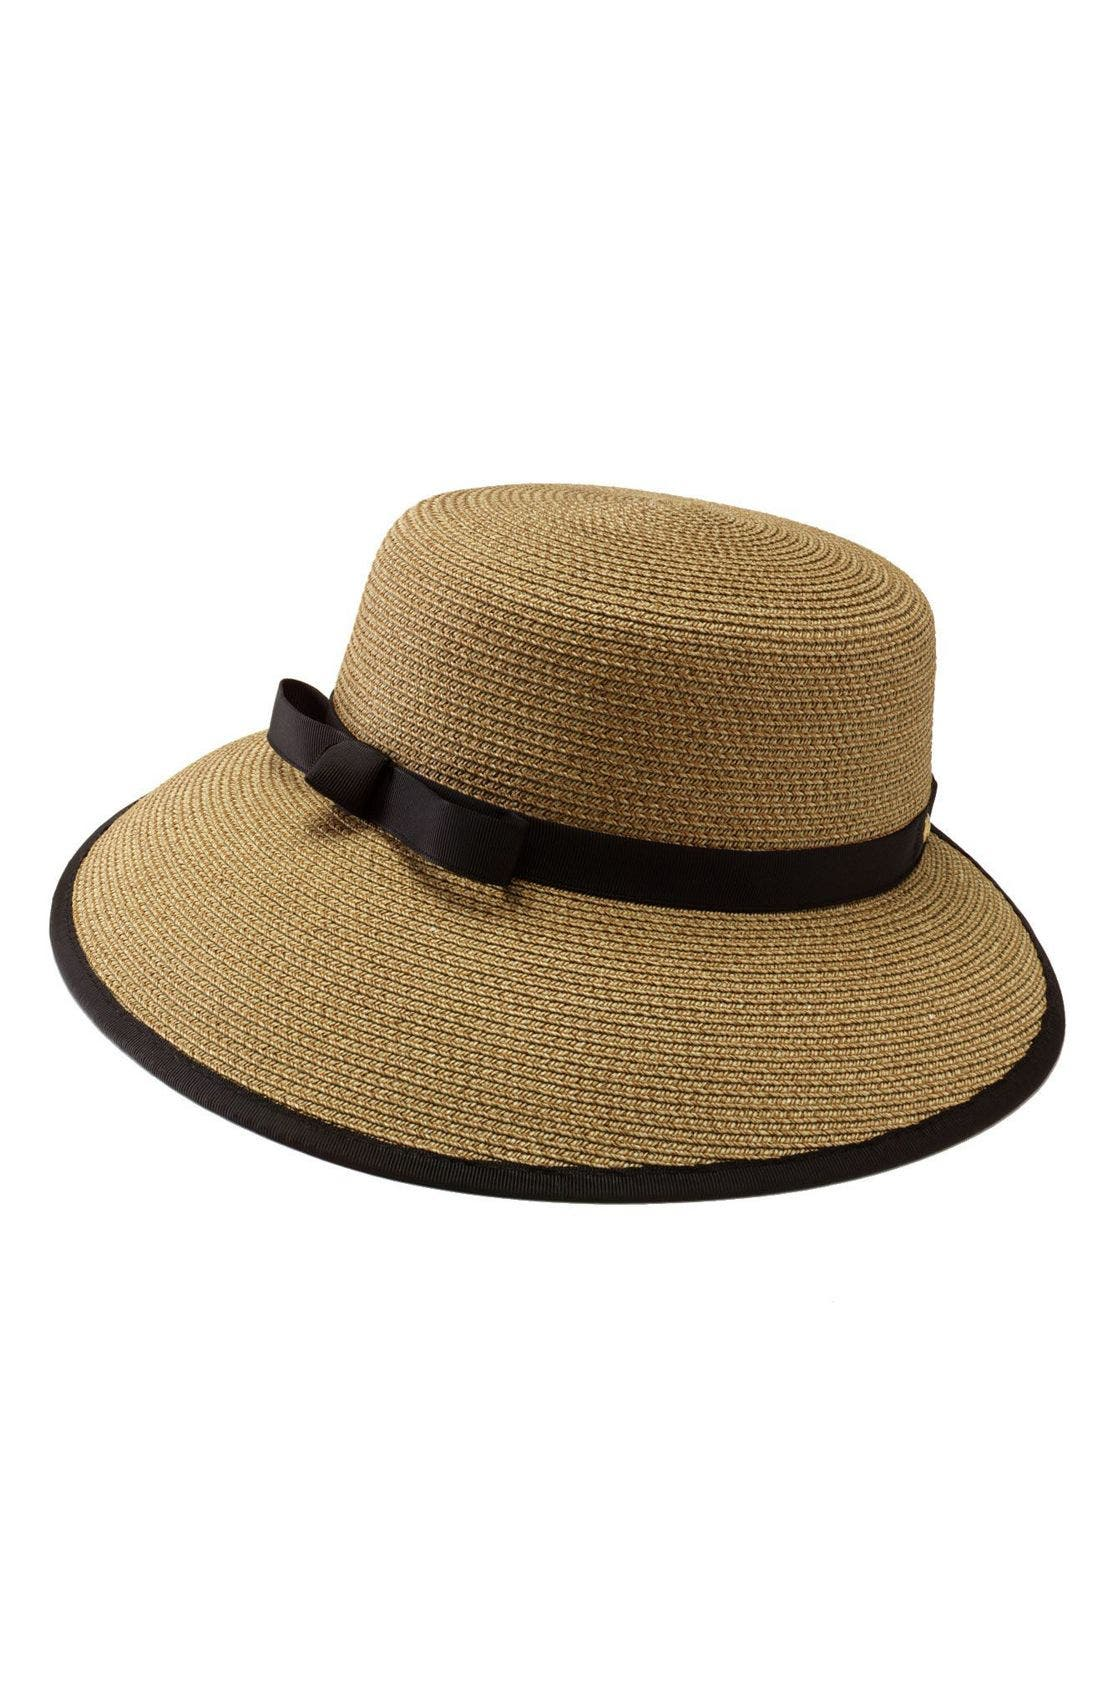 Squishee<sup>®</sup> Straw Cap,                         Main,                         color, NBK